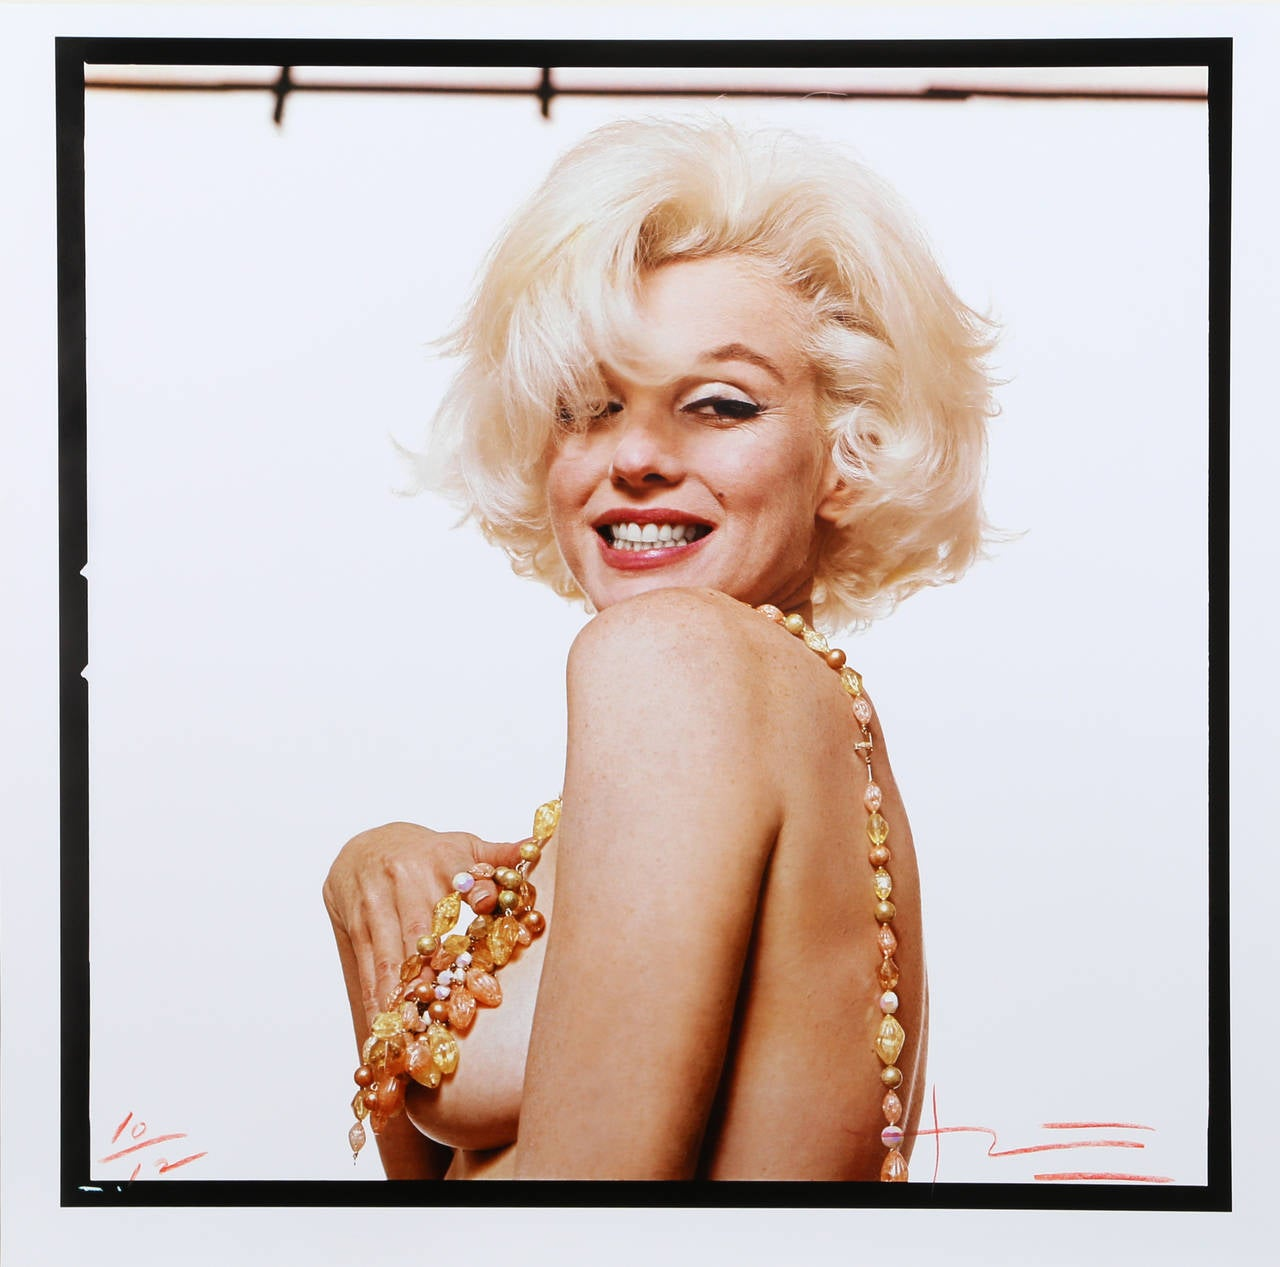 Bert Stern Portrait Photograph - Marilyn Monroe -The Last Sitting